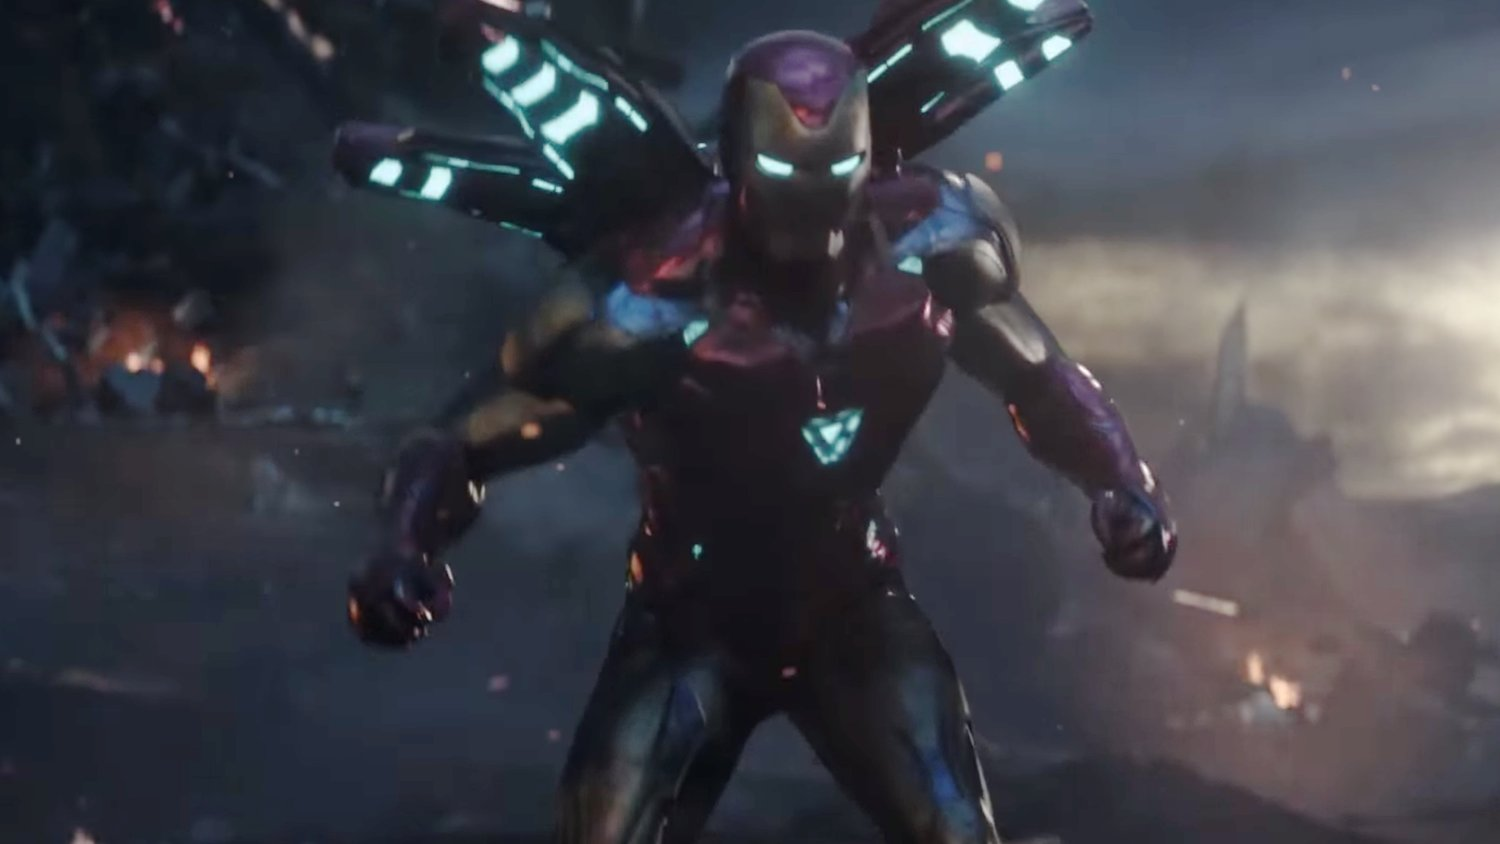 2 New Avengers Endgame Promo Spots And An International Poster That